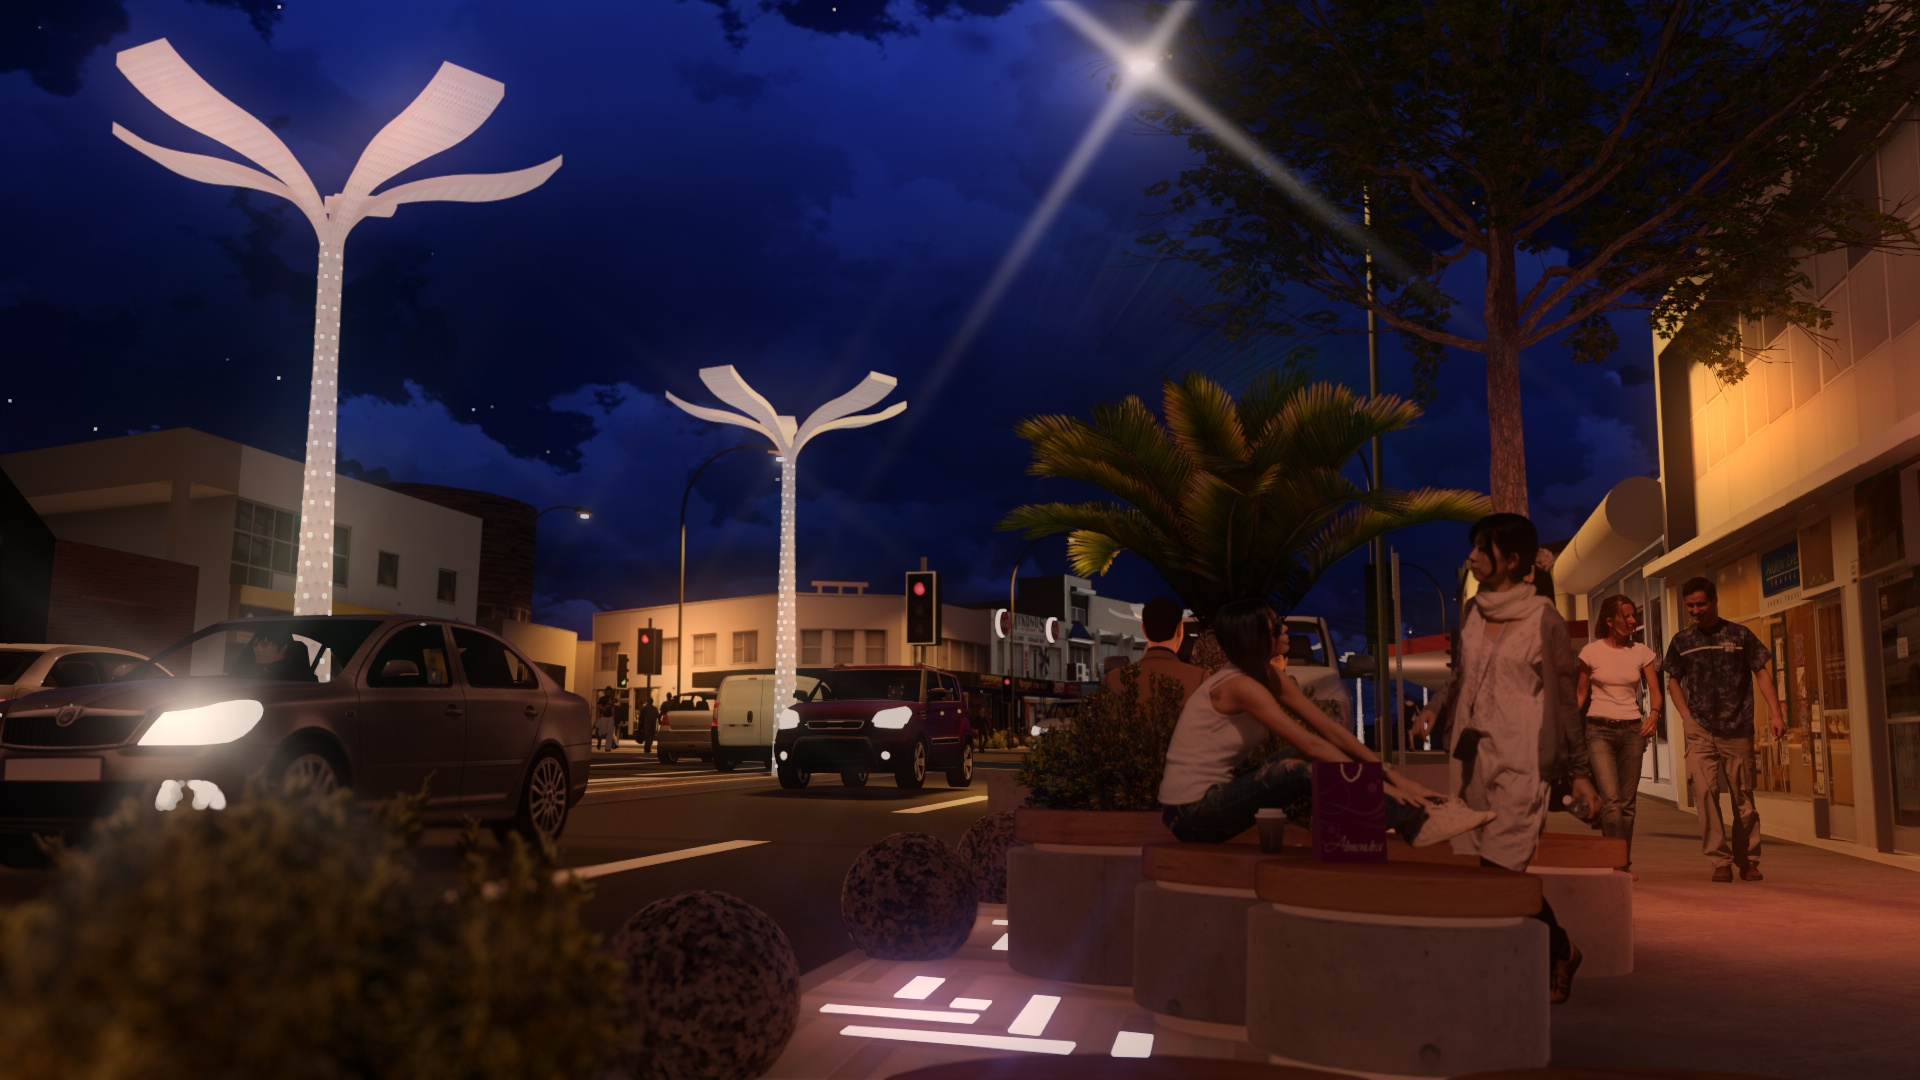 Mood lighting and seating to extend the daily public life of the High Street.